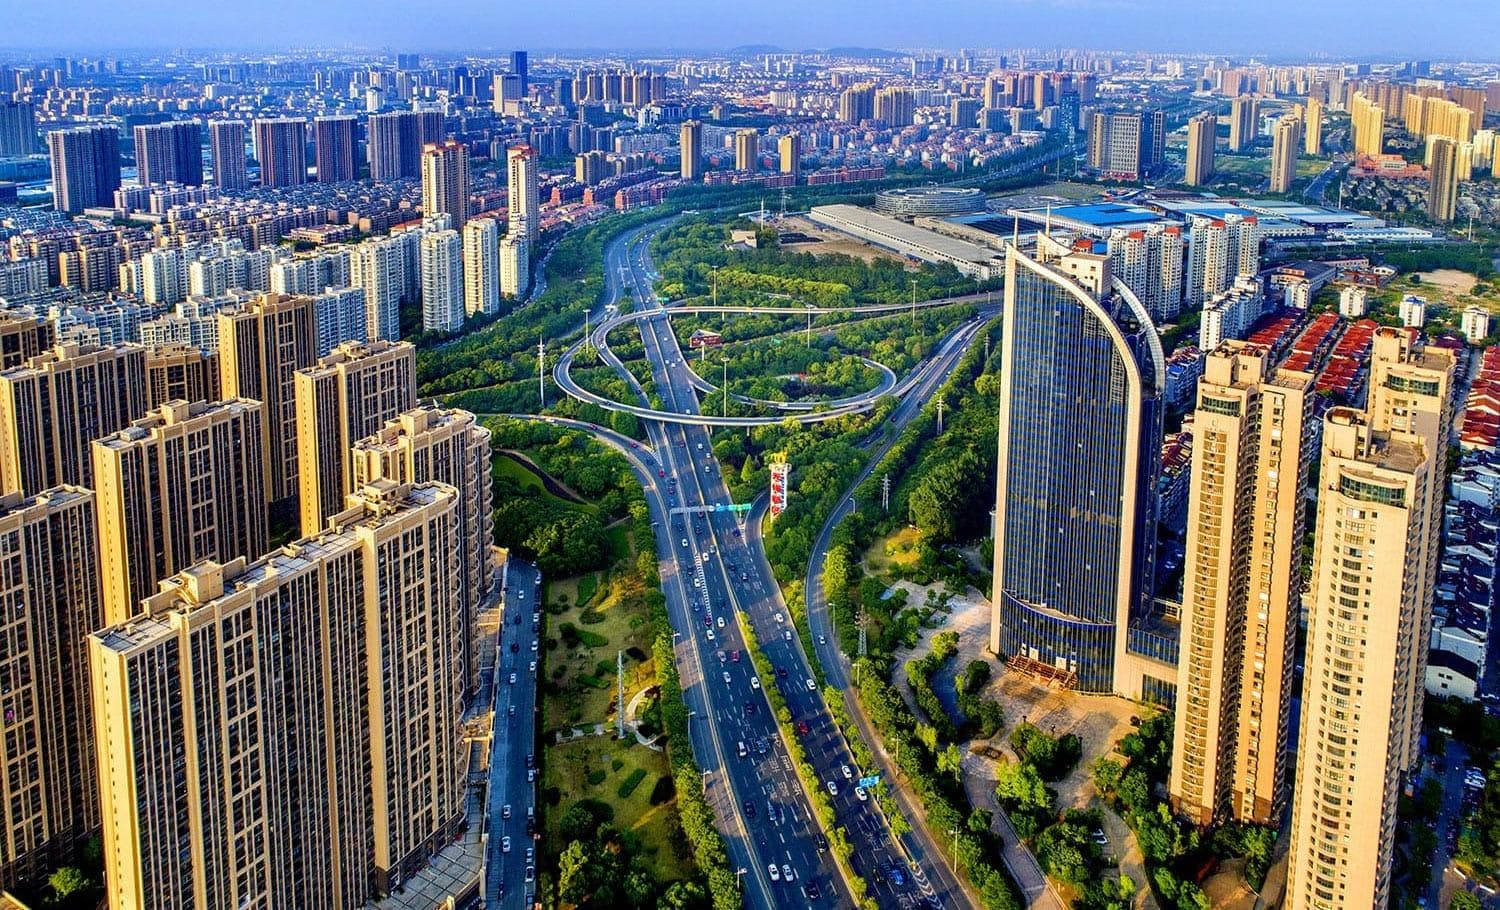 Aerial view of Wuxi high tech hub